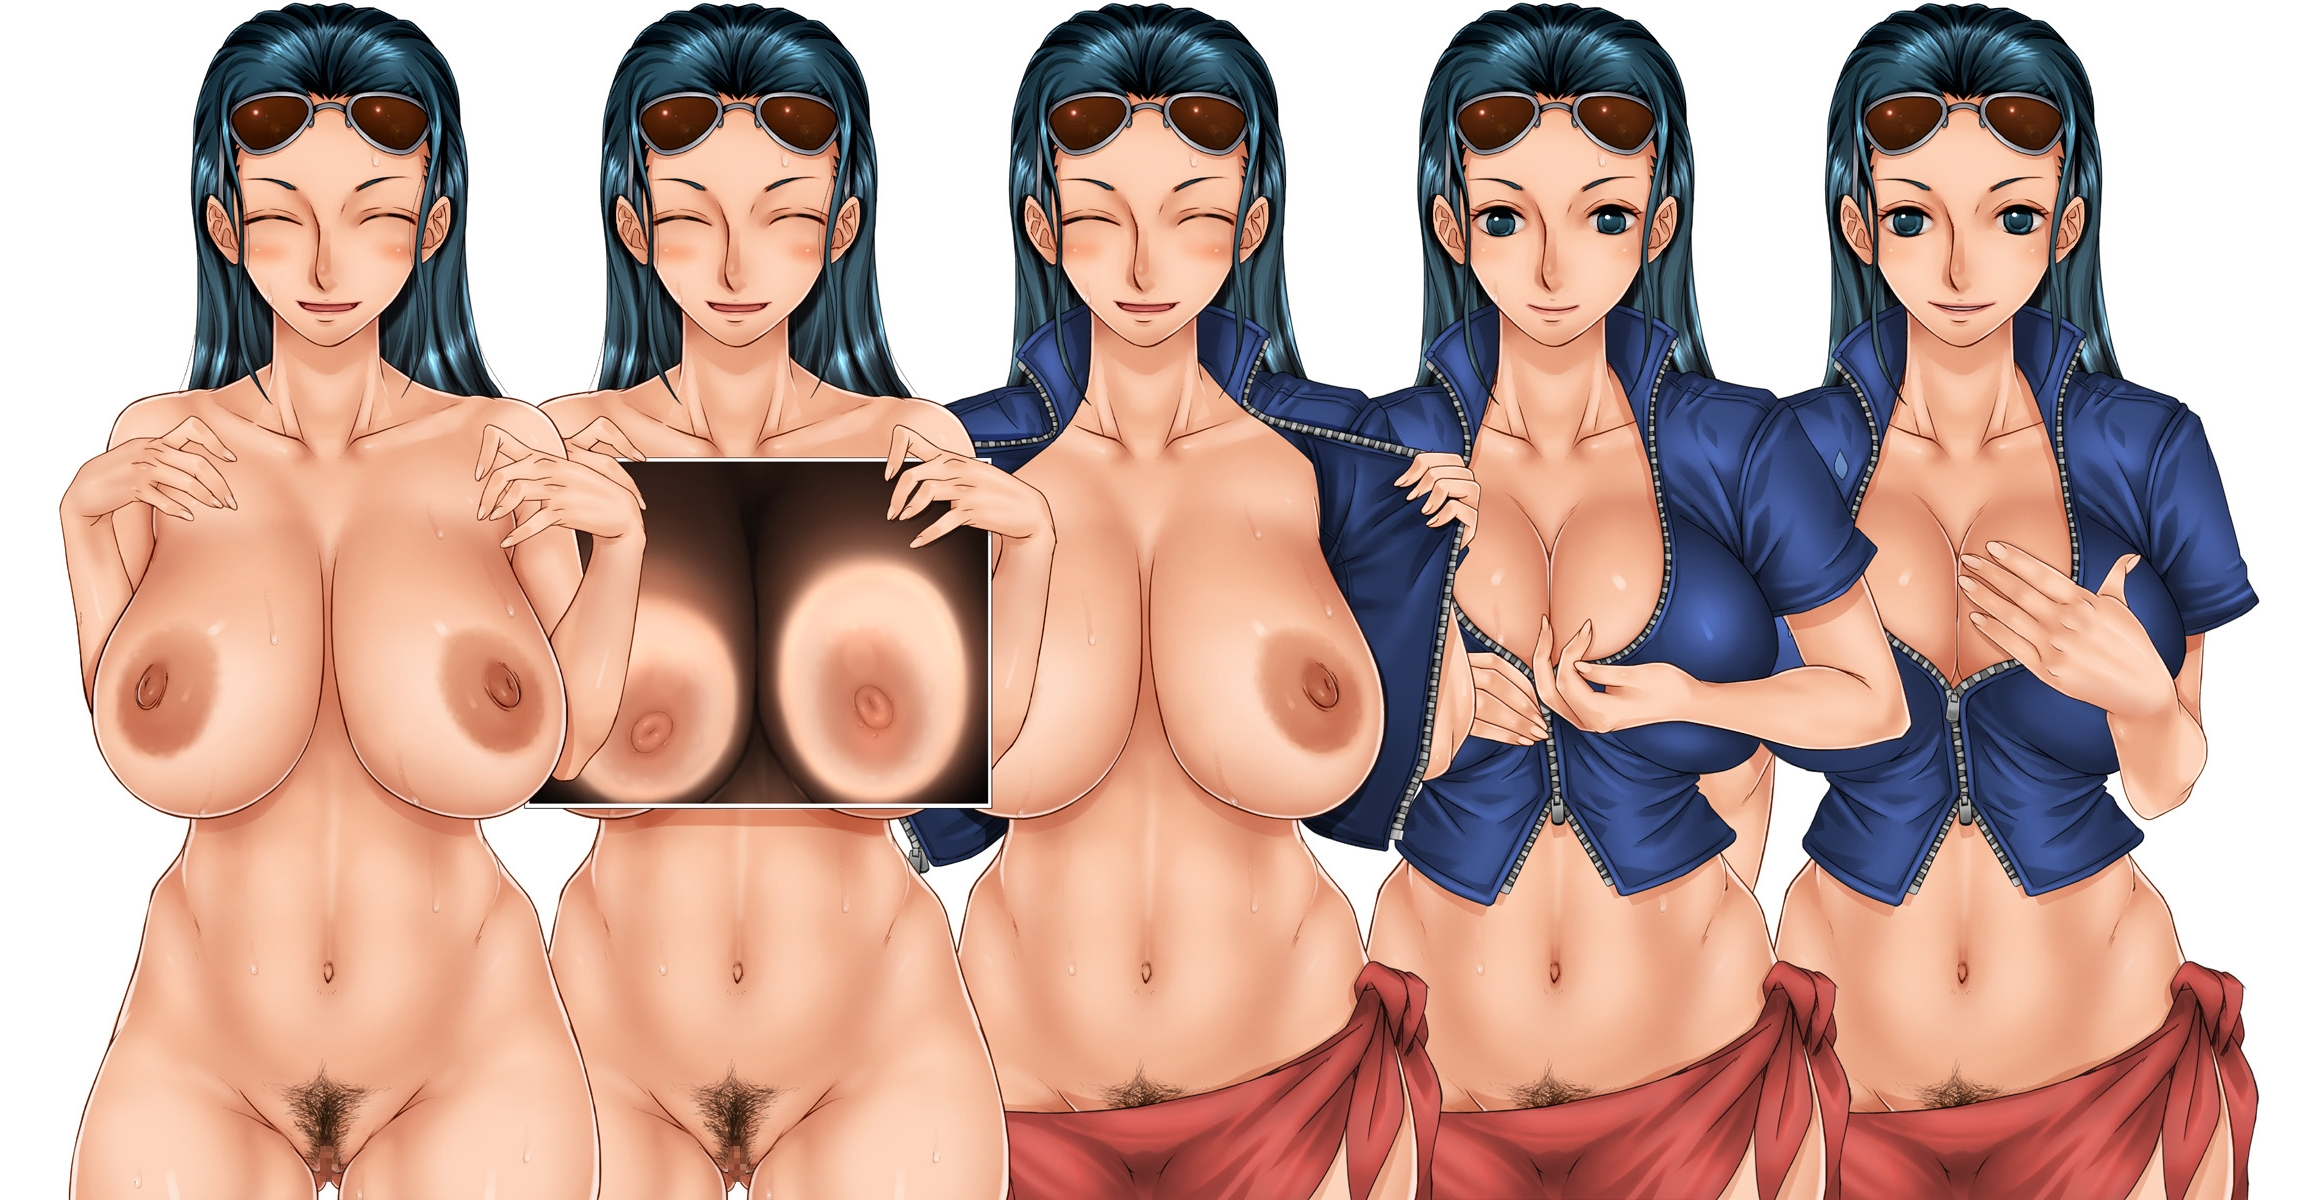 Toon sex pic ##0001301459031 areolae black hair blue eyes blush breasts censored cleavage closed eyes female highres hips large breasts legs long hair nico robin nipples one piece open clothes open mouth pubic hair pussy sakuradou simple background smile standing sunglasses sweat thighs undressing white background